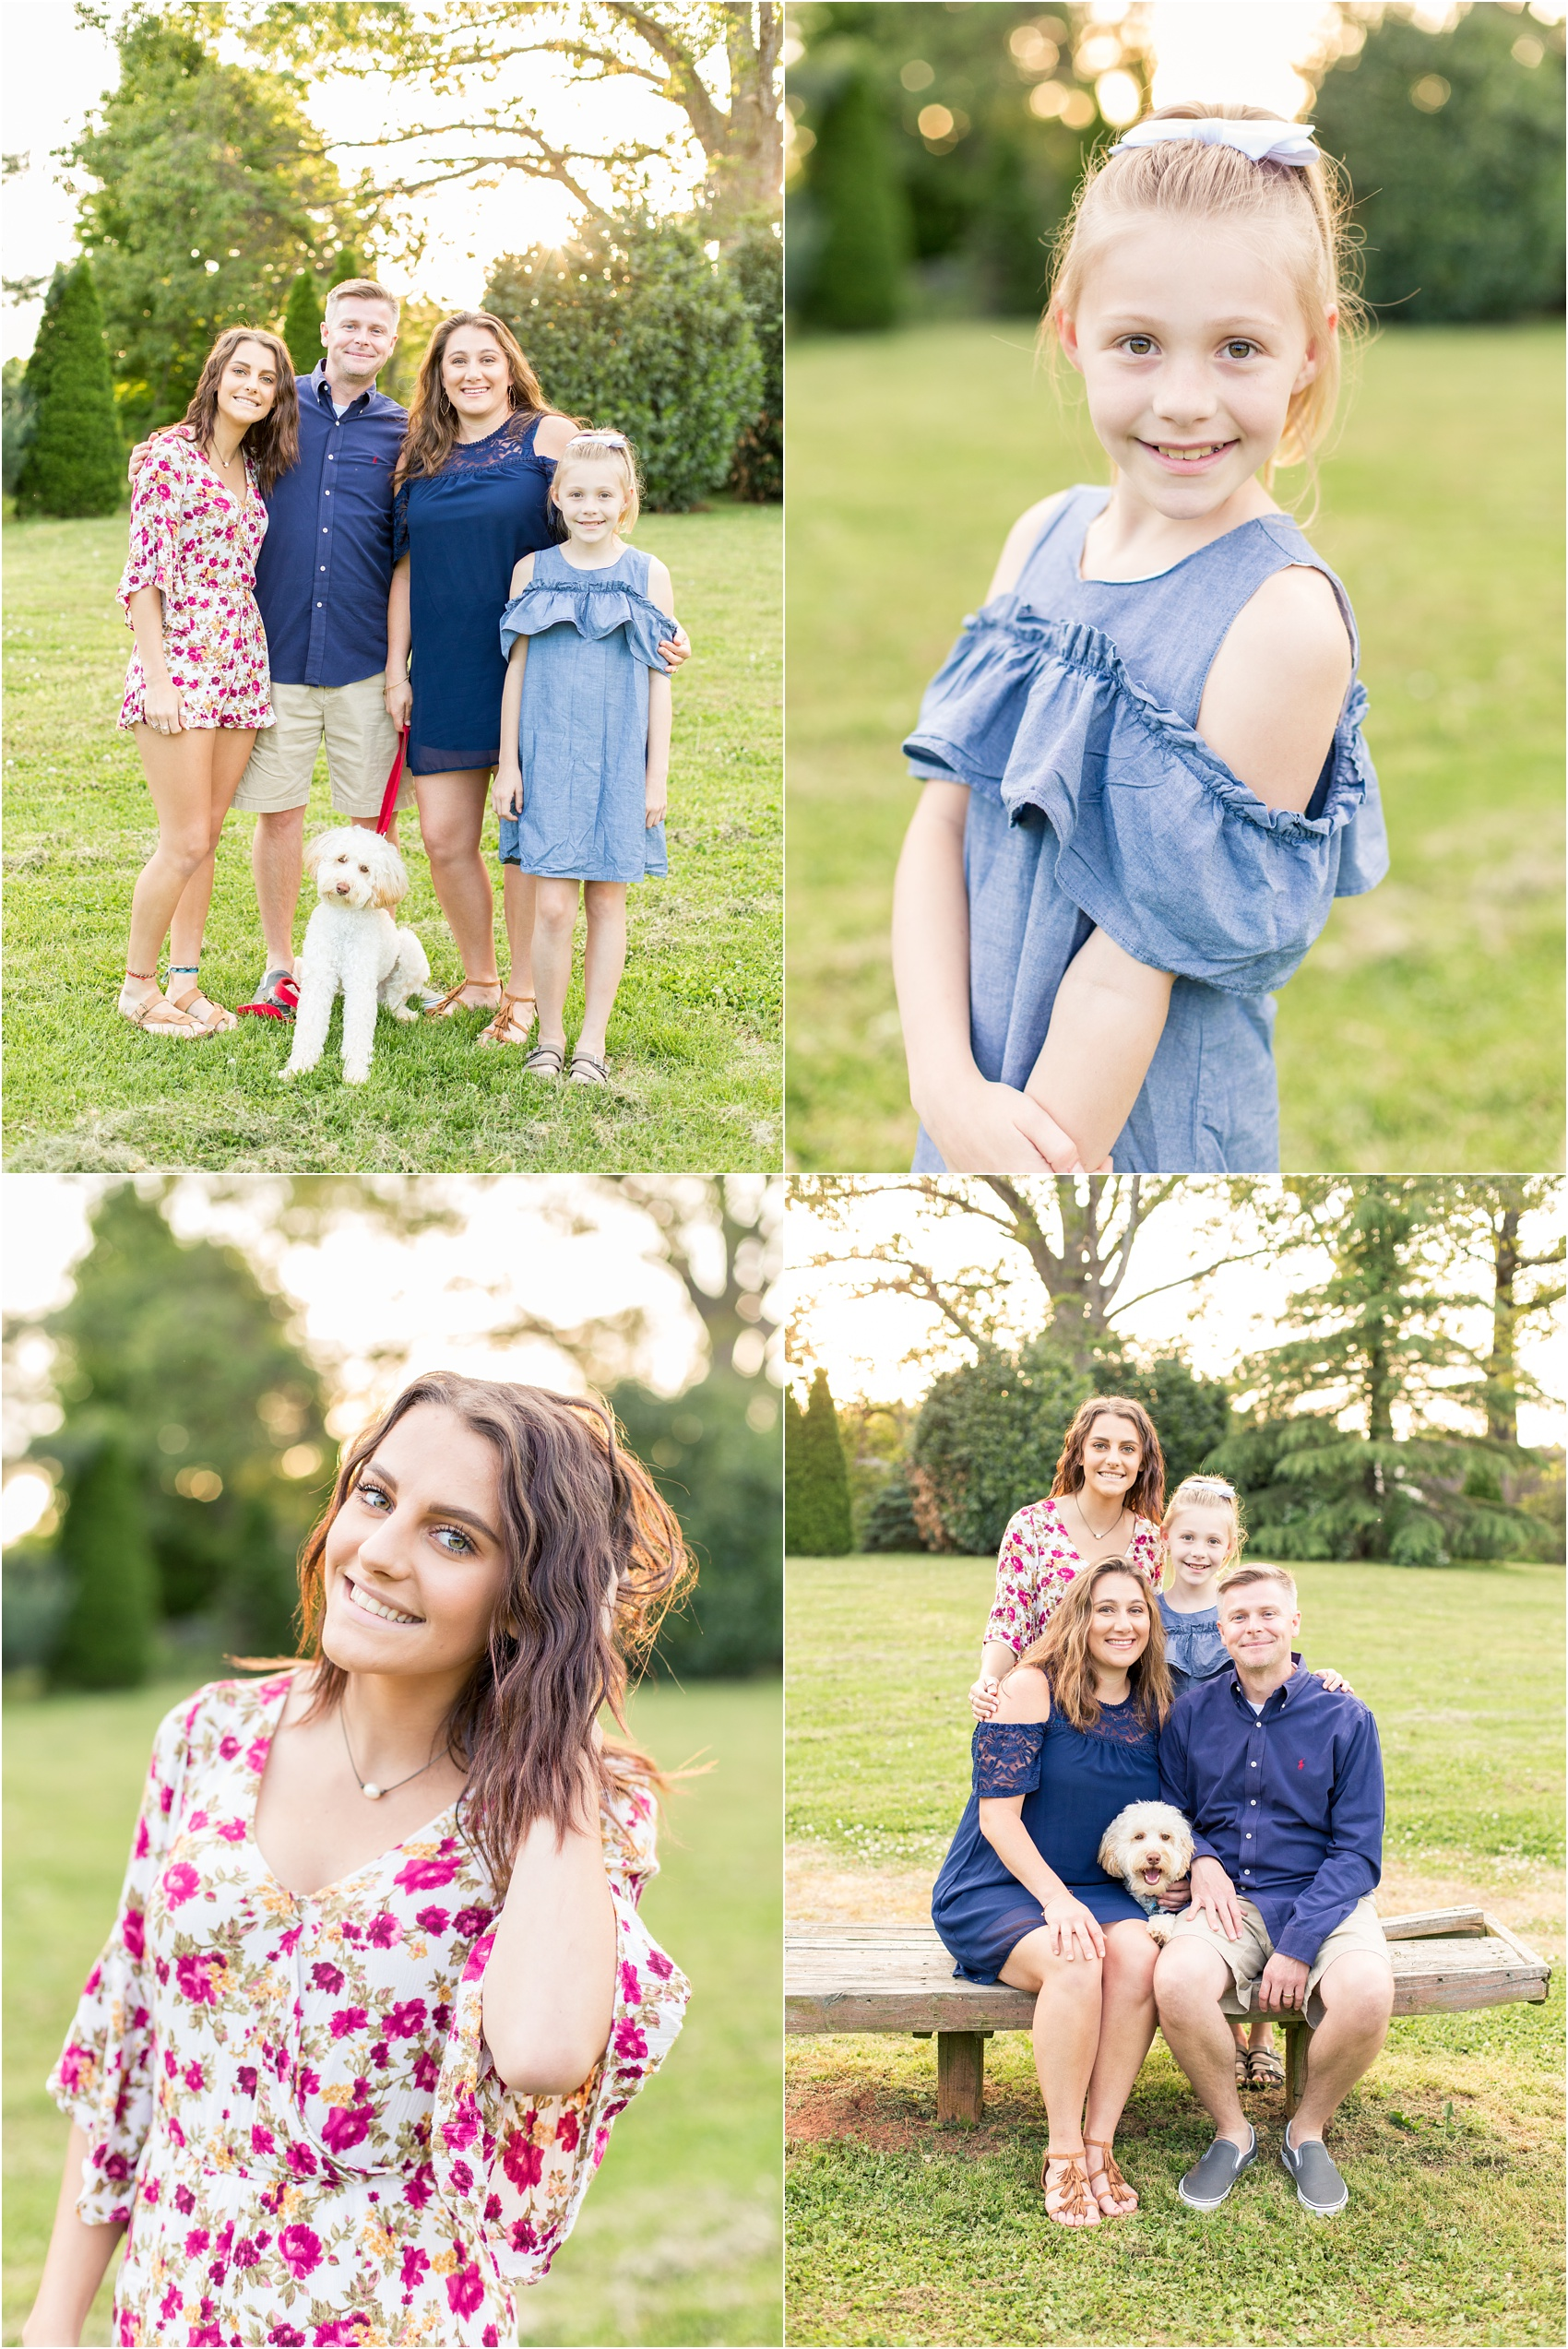 Savannah Eve Photography- Baysden Family-1.jpg